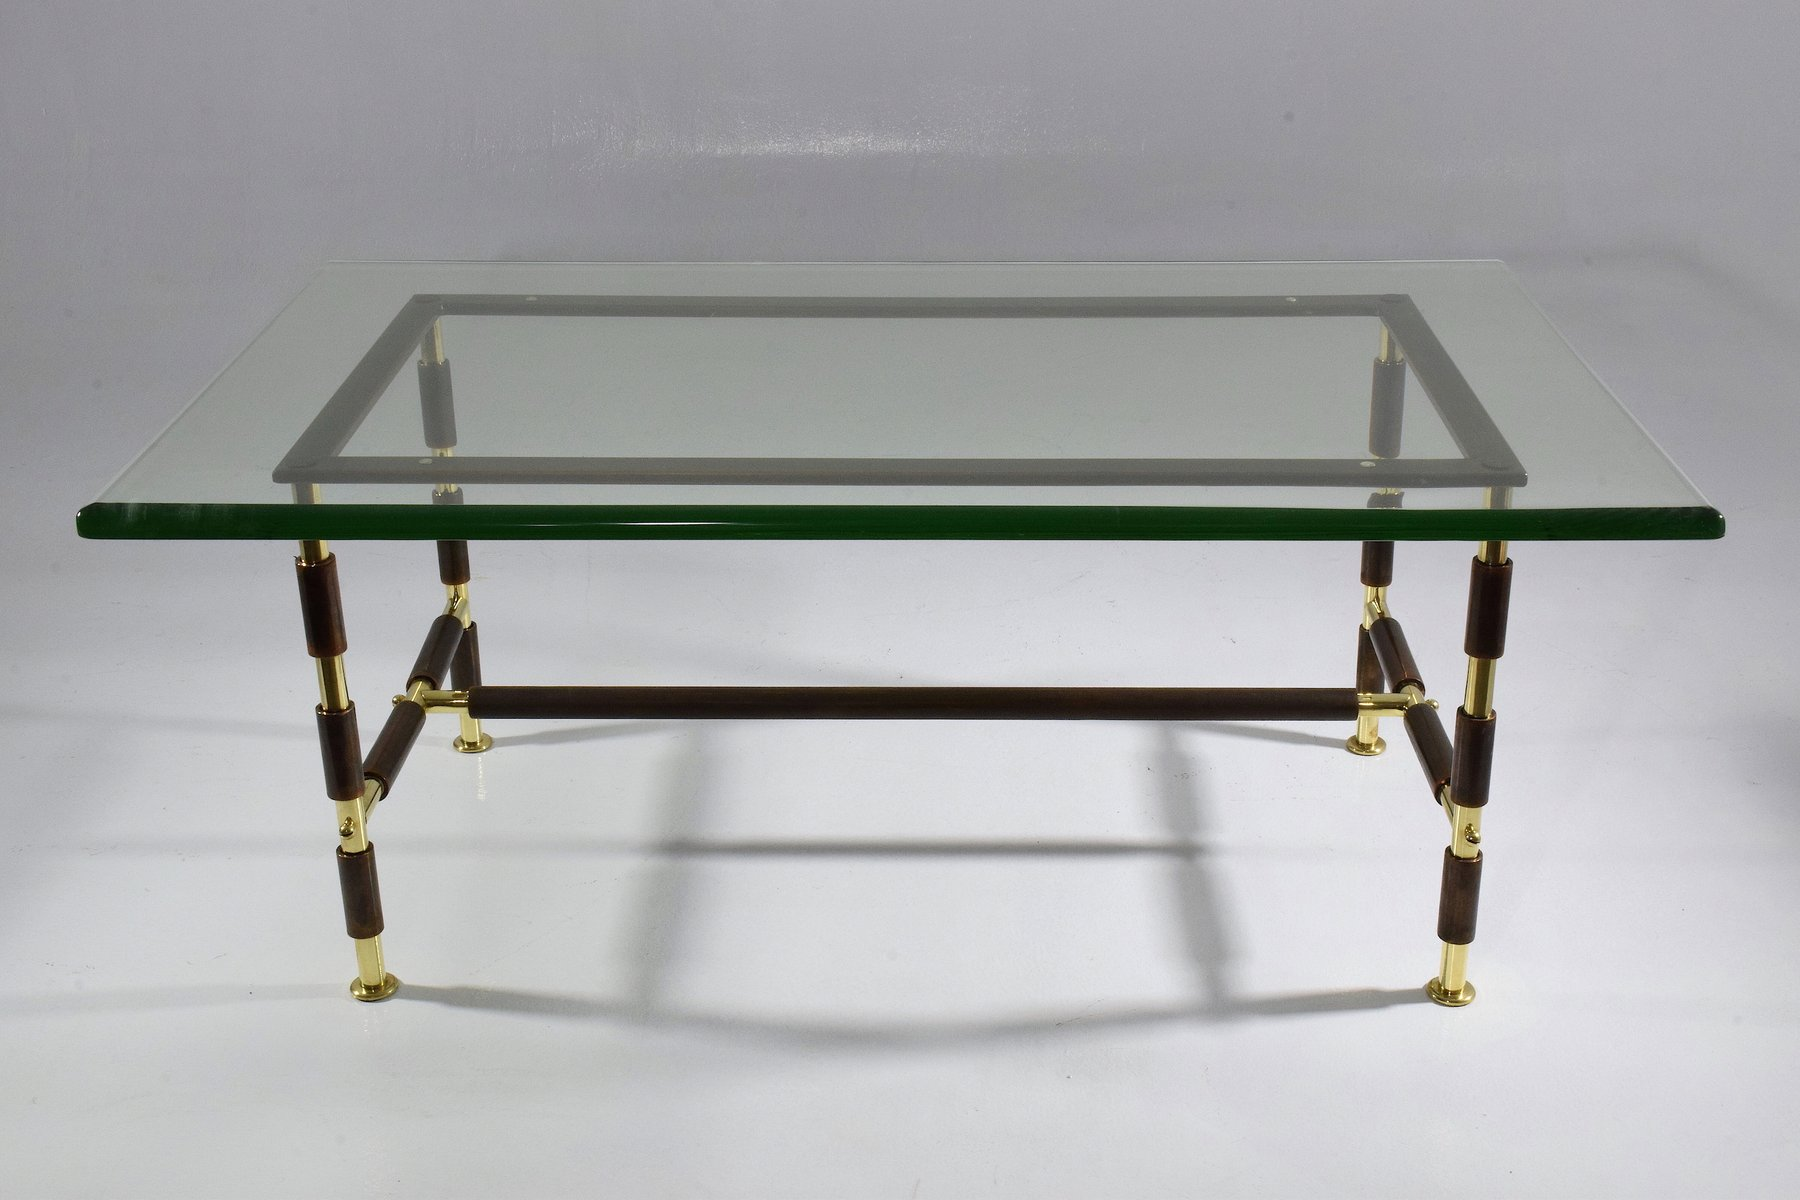 1736 Coffee Table by Max Ingrand for Fontana Arte 1955 for sale